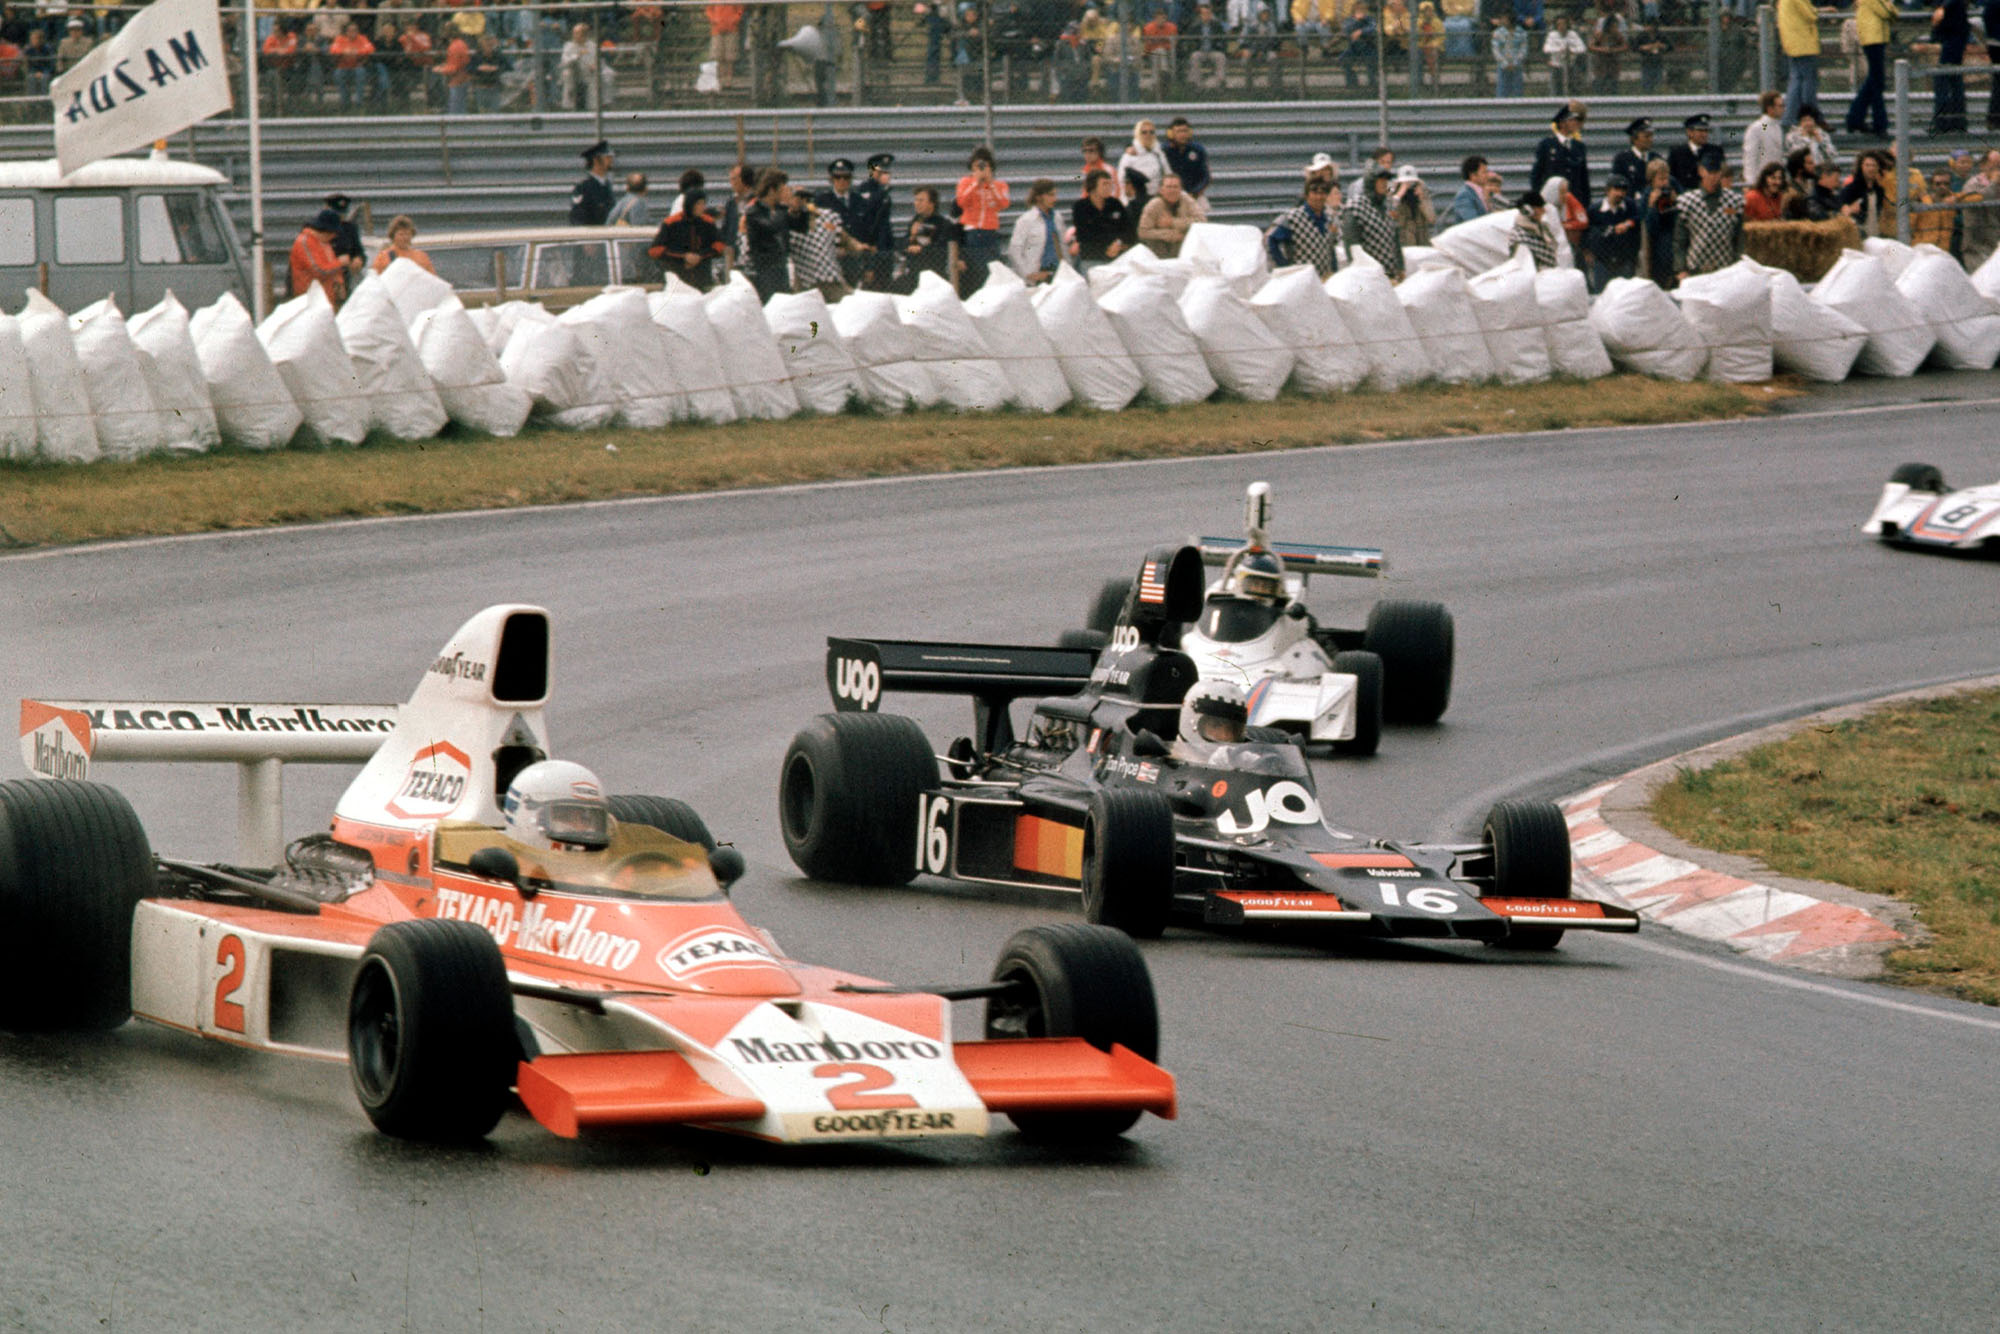 Jochen Mass (McLaren, foreground) and Tom Pryce (Shadow) attempt to get to grips with the slippery conditions at the 1975 Dutch Grand Prix, Zandvoort.